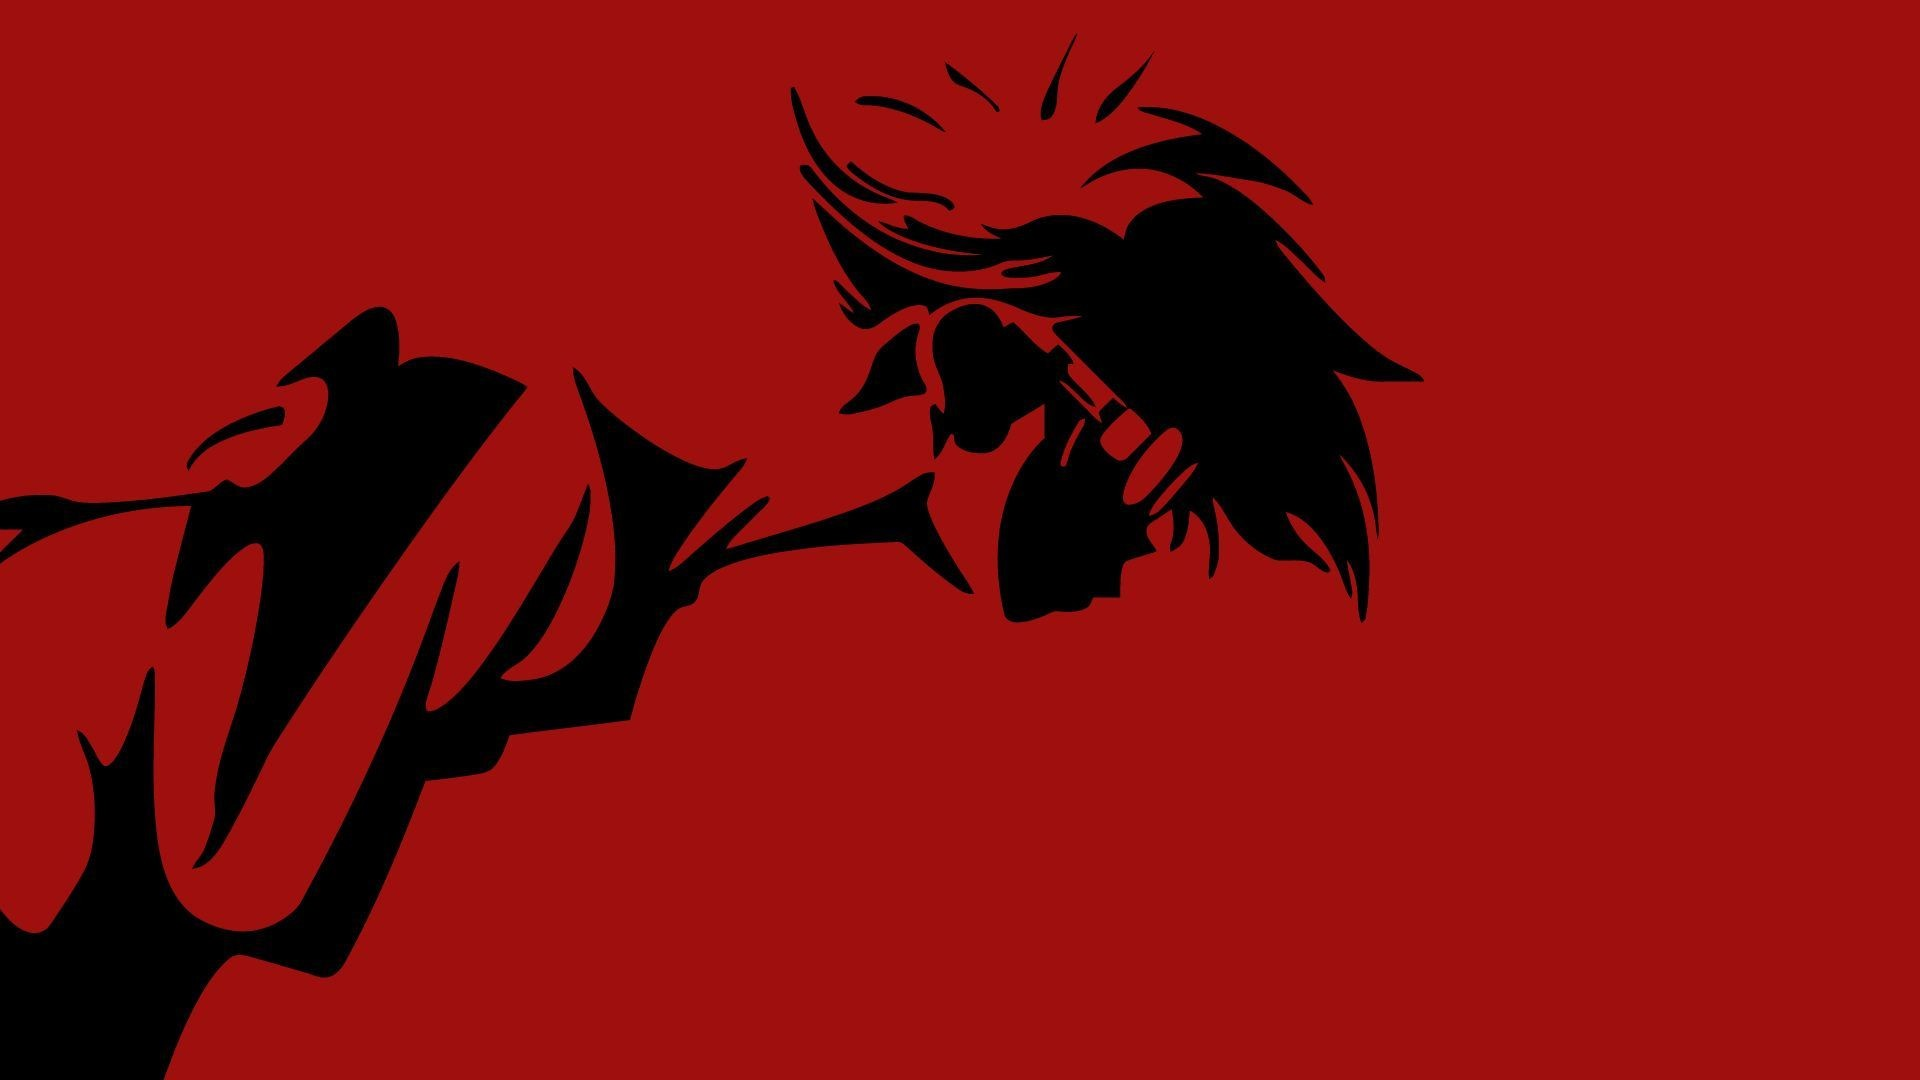 cowboy bebop wallpaper mobile